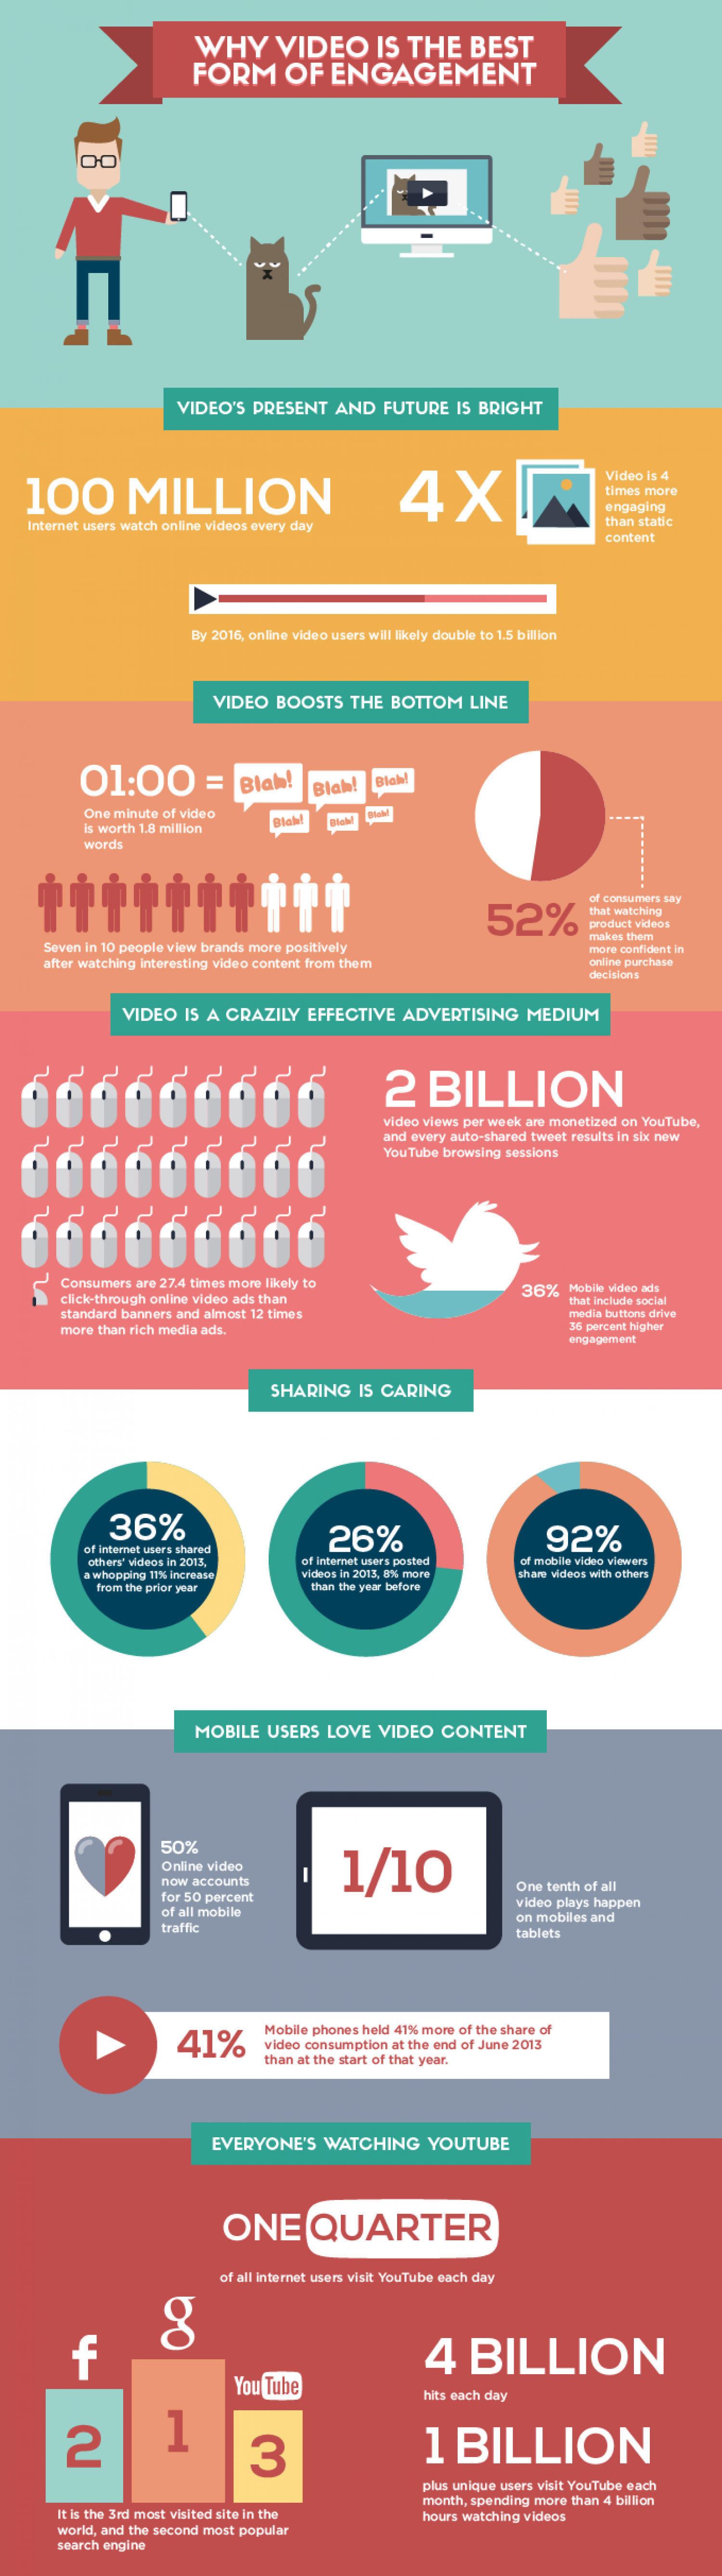 Why Video is the Best Form of Engagement  Infographic